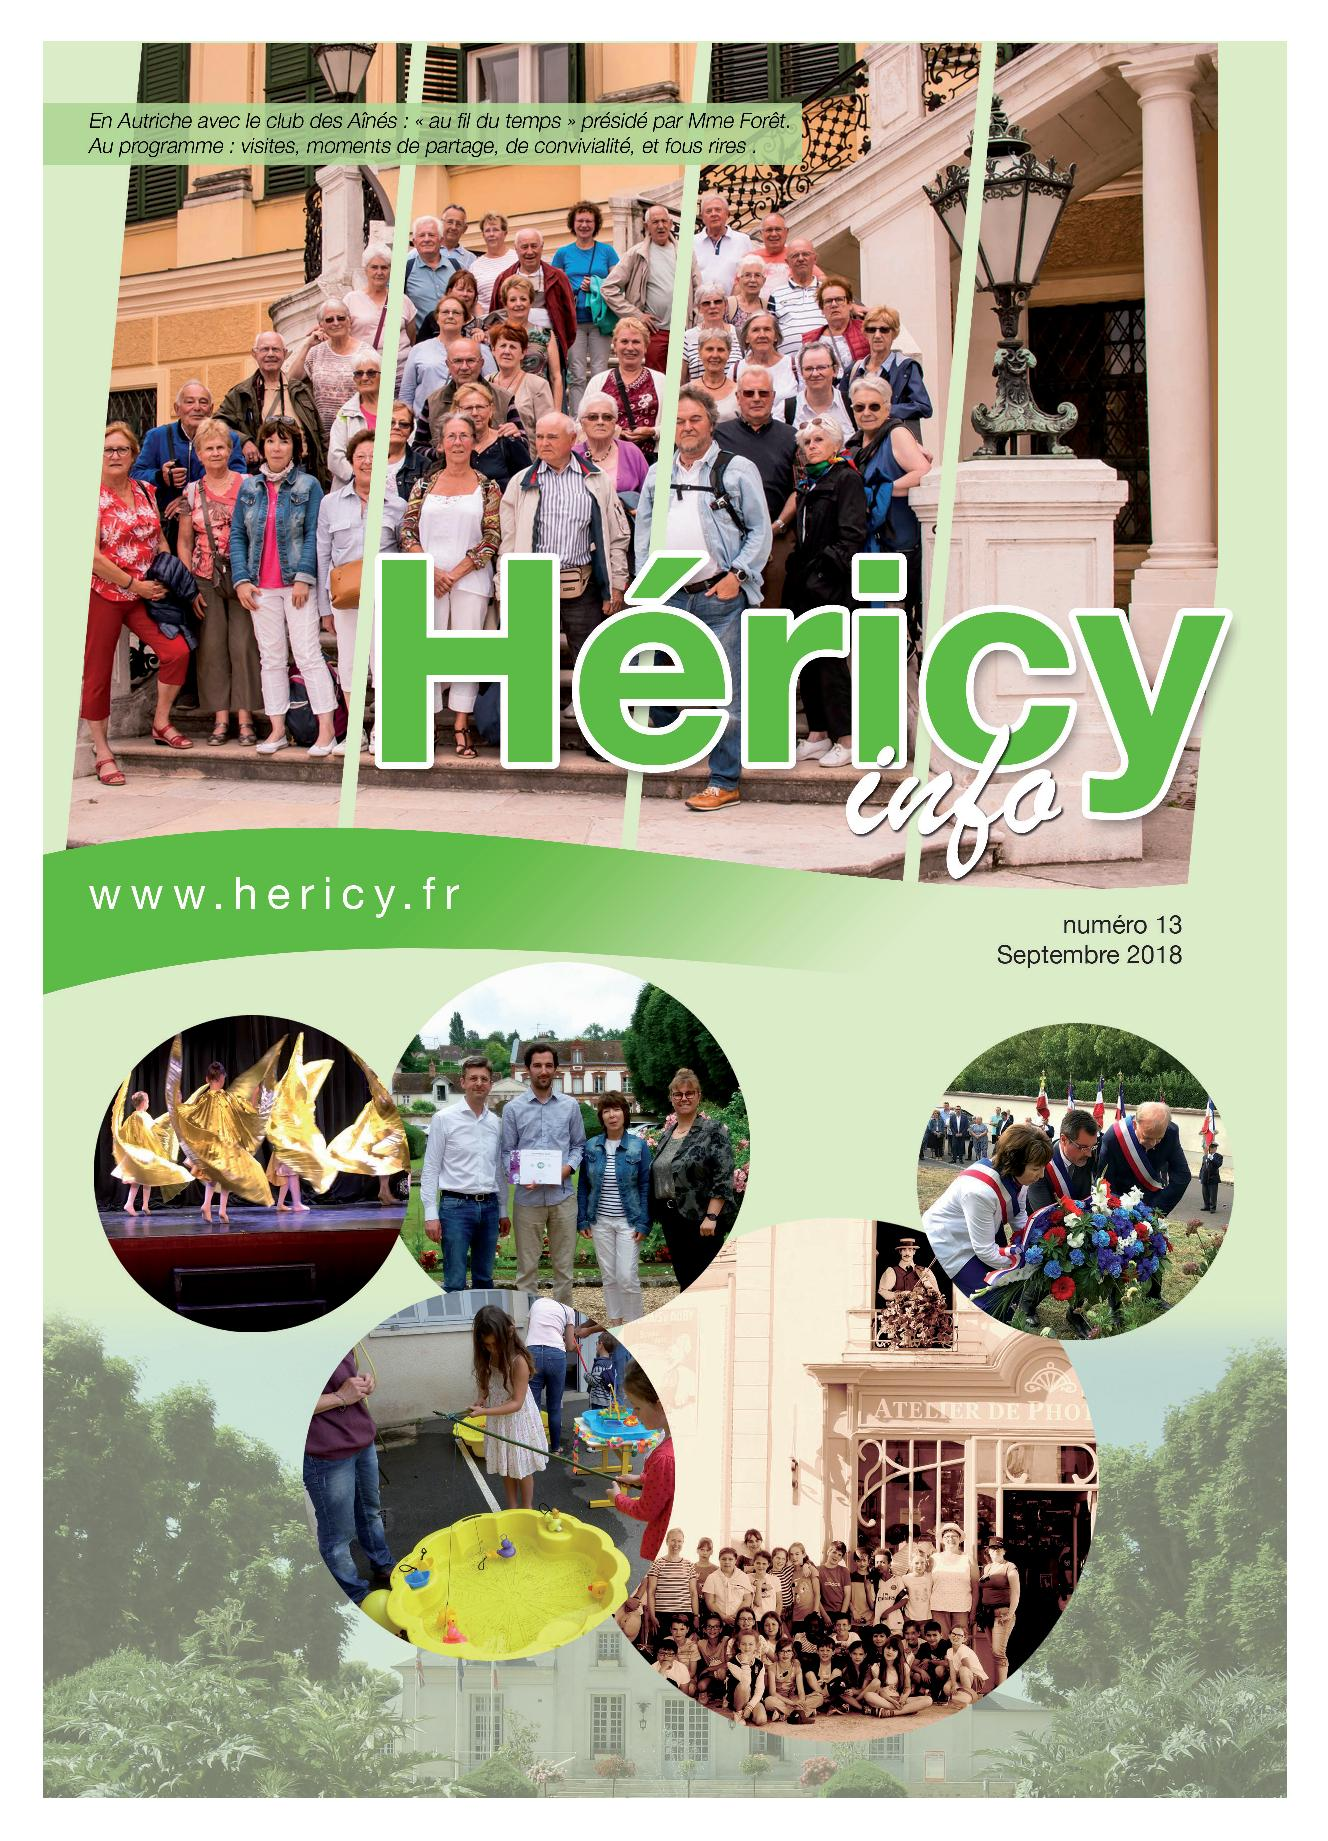 HERICY-Bulletin0918-PRINT-page-001